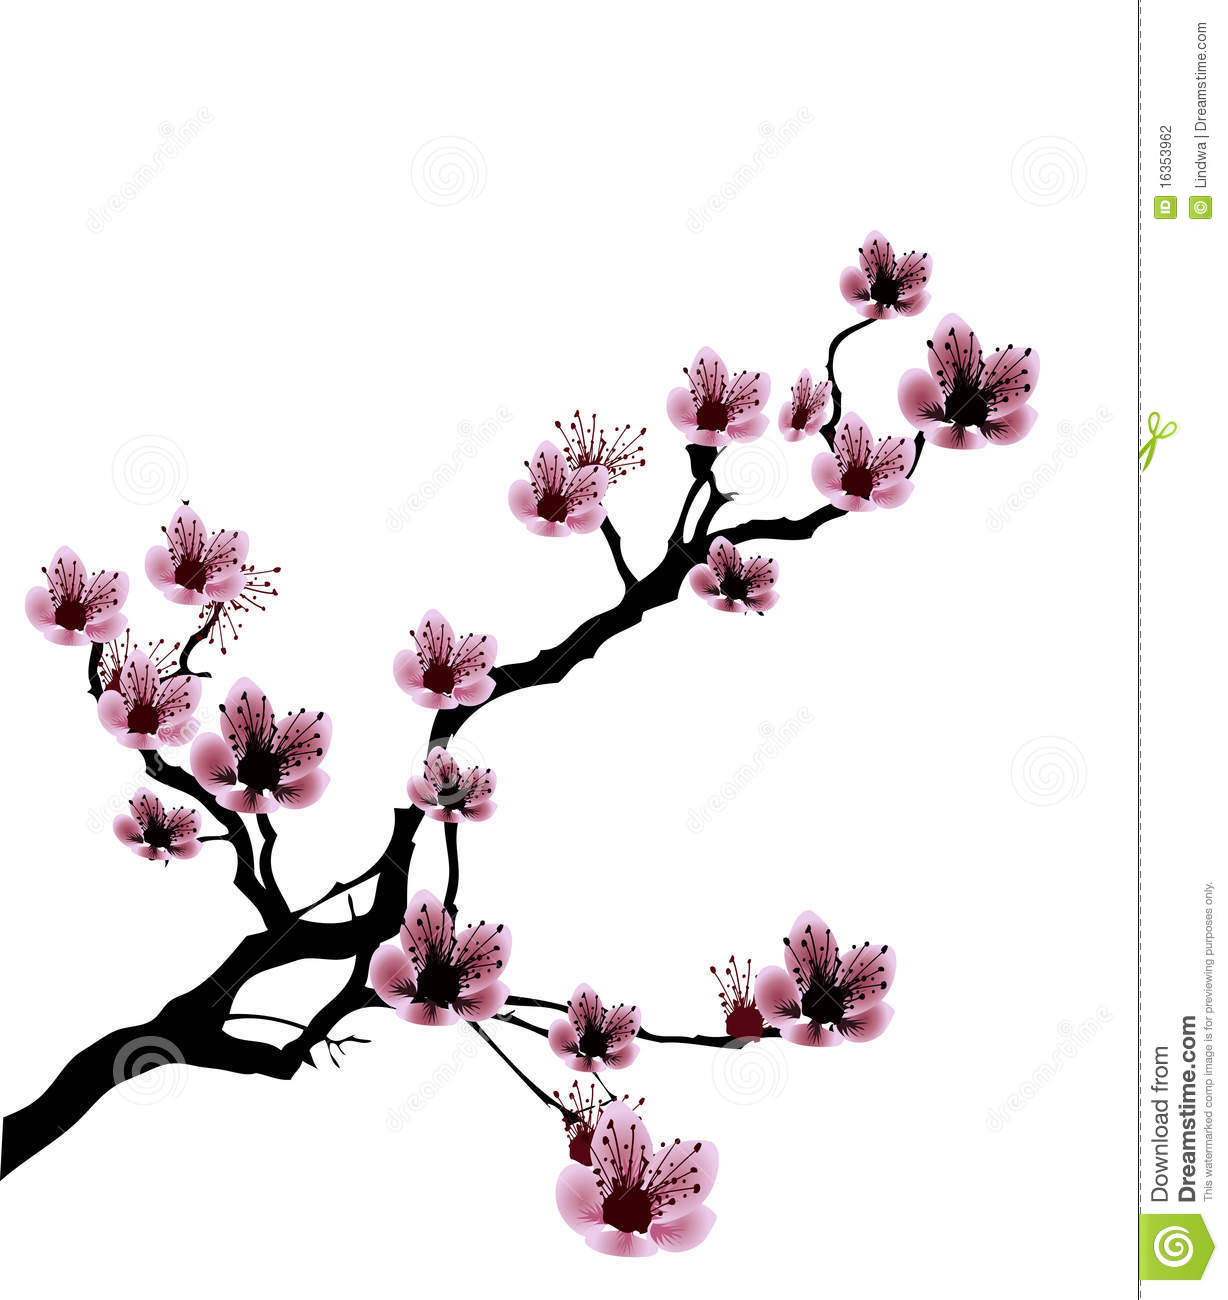 1228x1300 Black And White Cherry Blossom Drawings Cherry Blossom Drawings